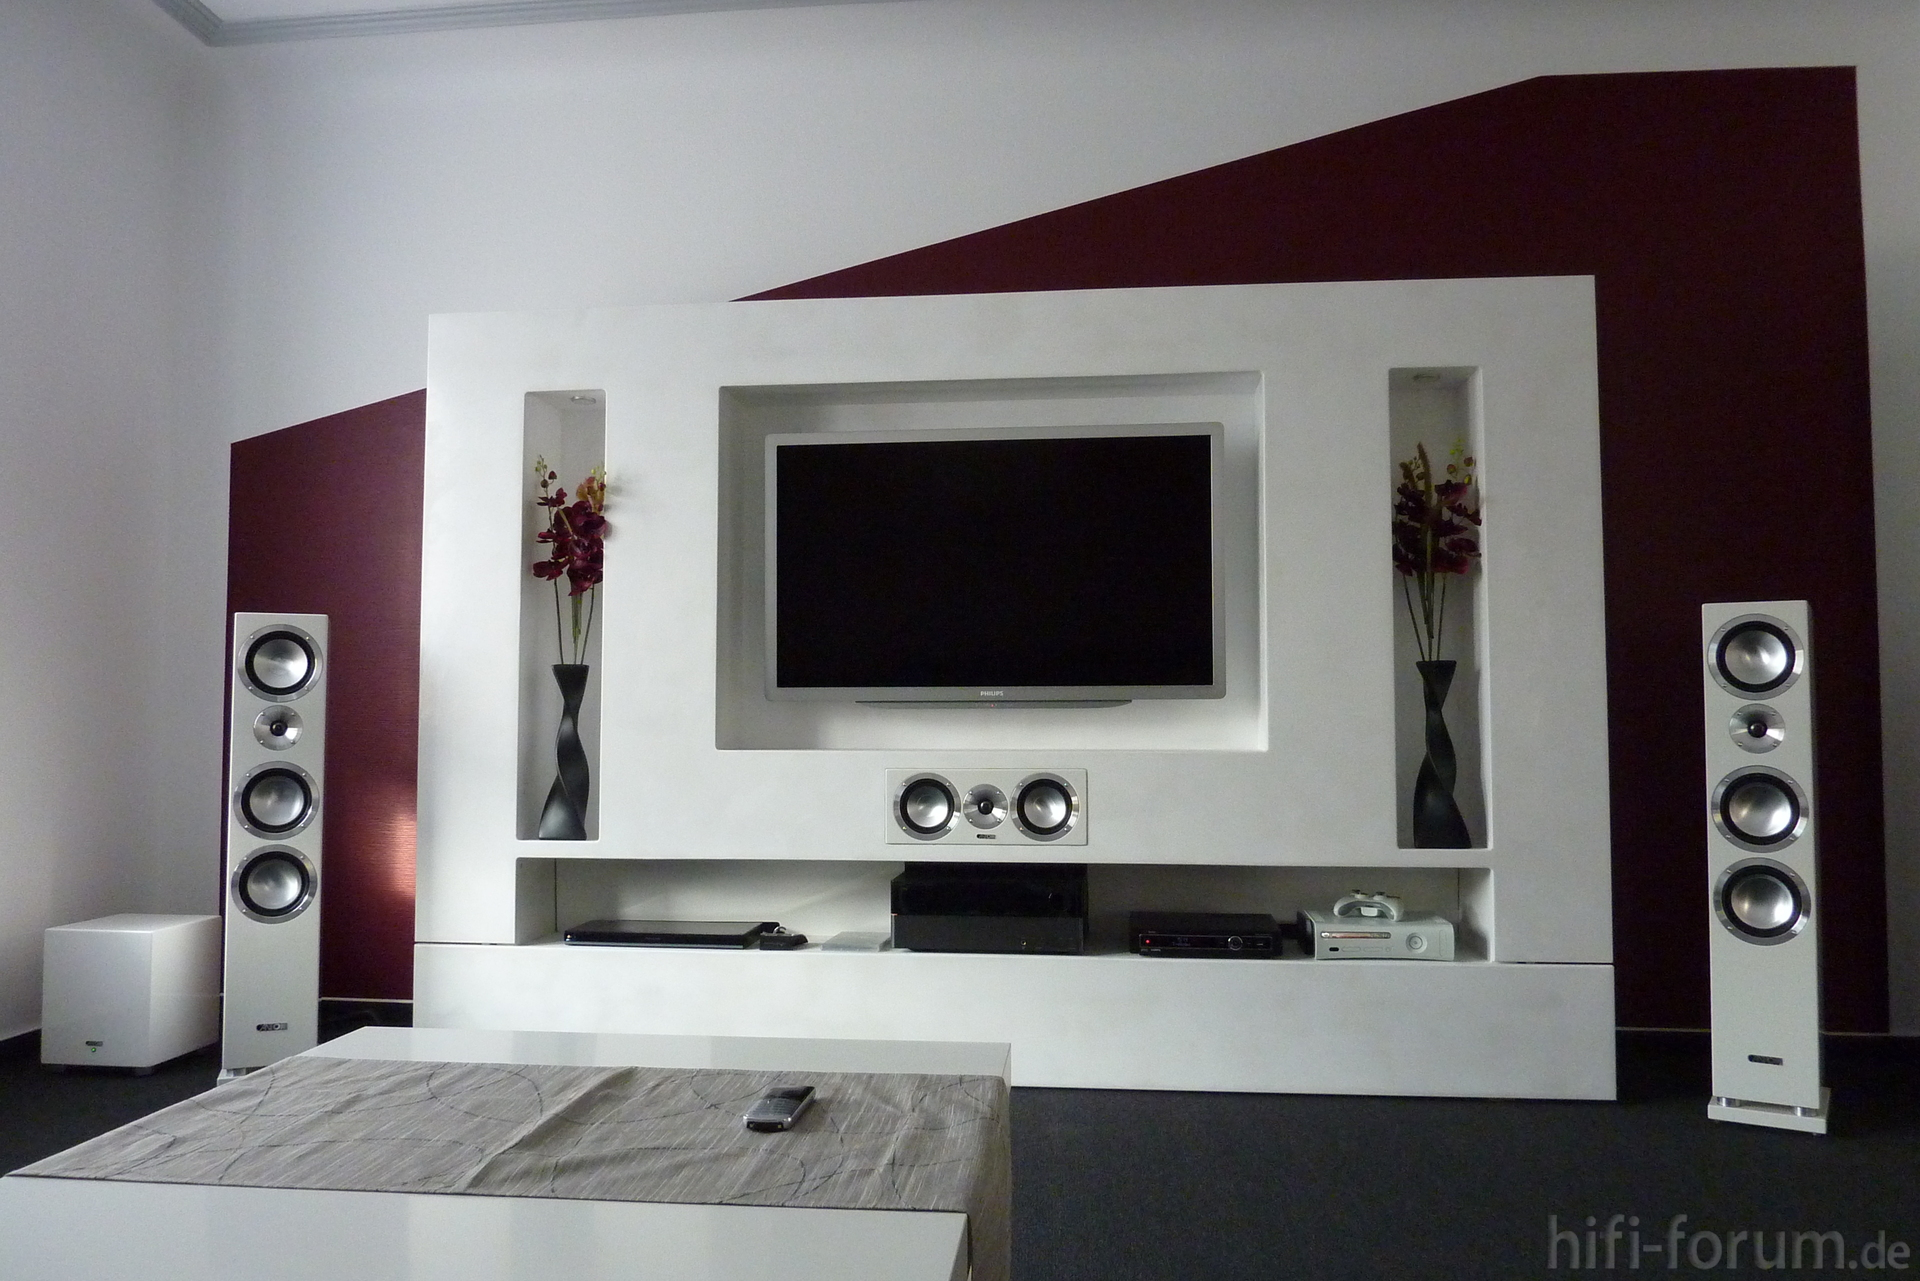 wohnzimmer medienwand bdt310 heimkino medienwand wohnzimmer xbox360 hifi. Black Bedroom Furniture Sets. Home Design Ideas